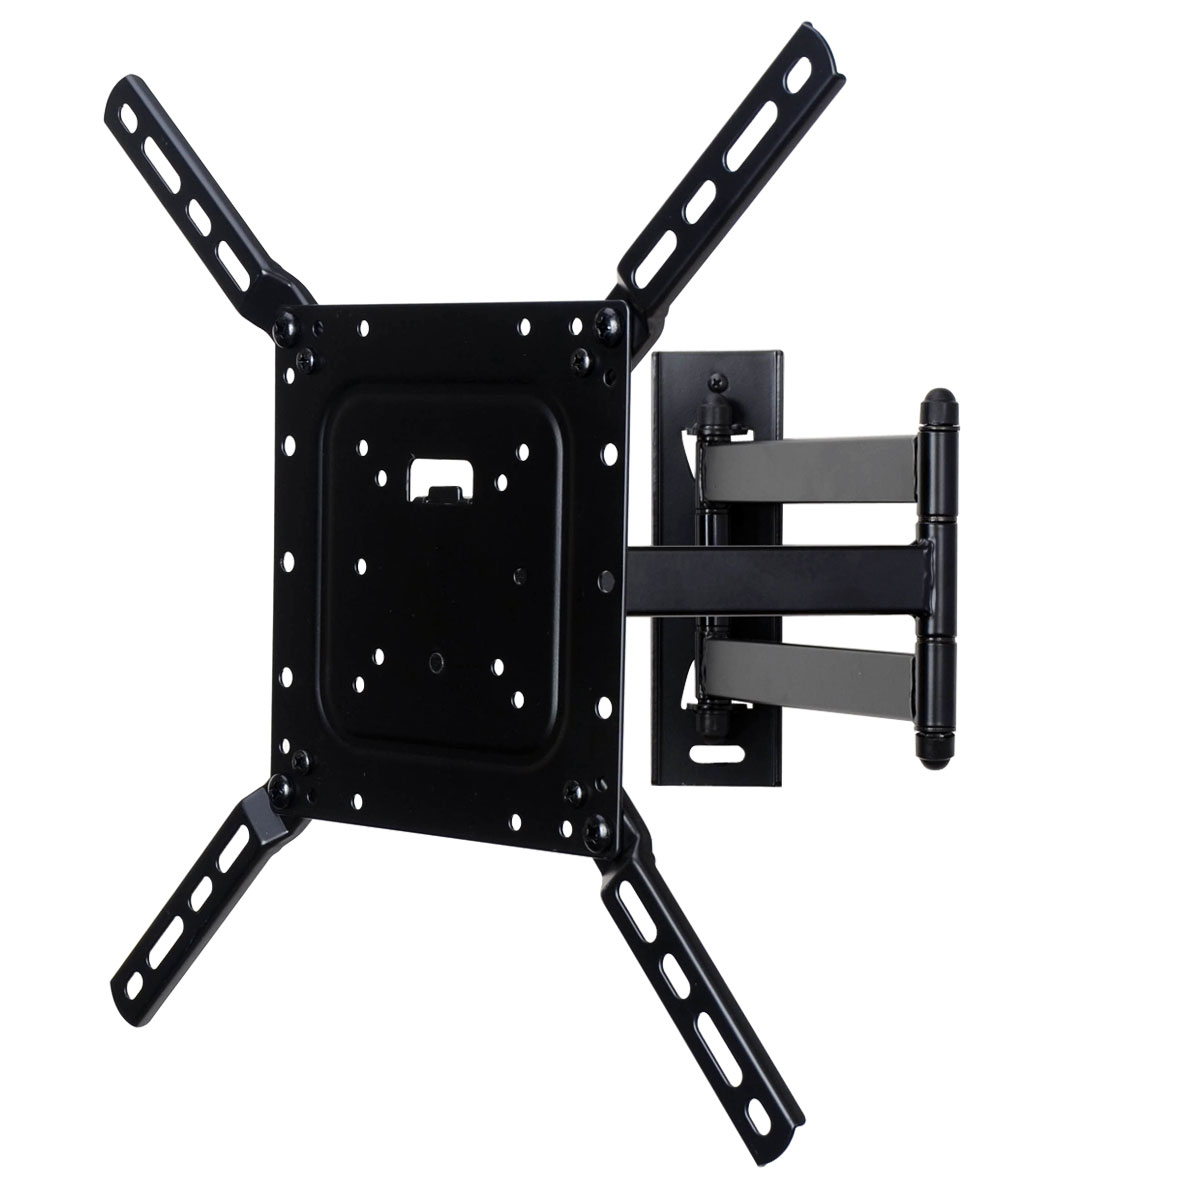 VideoSecu Articulating TV Wall Mount for 24-50 Toshiba Phillips Sansui LCD LED HDTV Bracket - VESA 400x400/200x200mm CB6